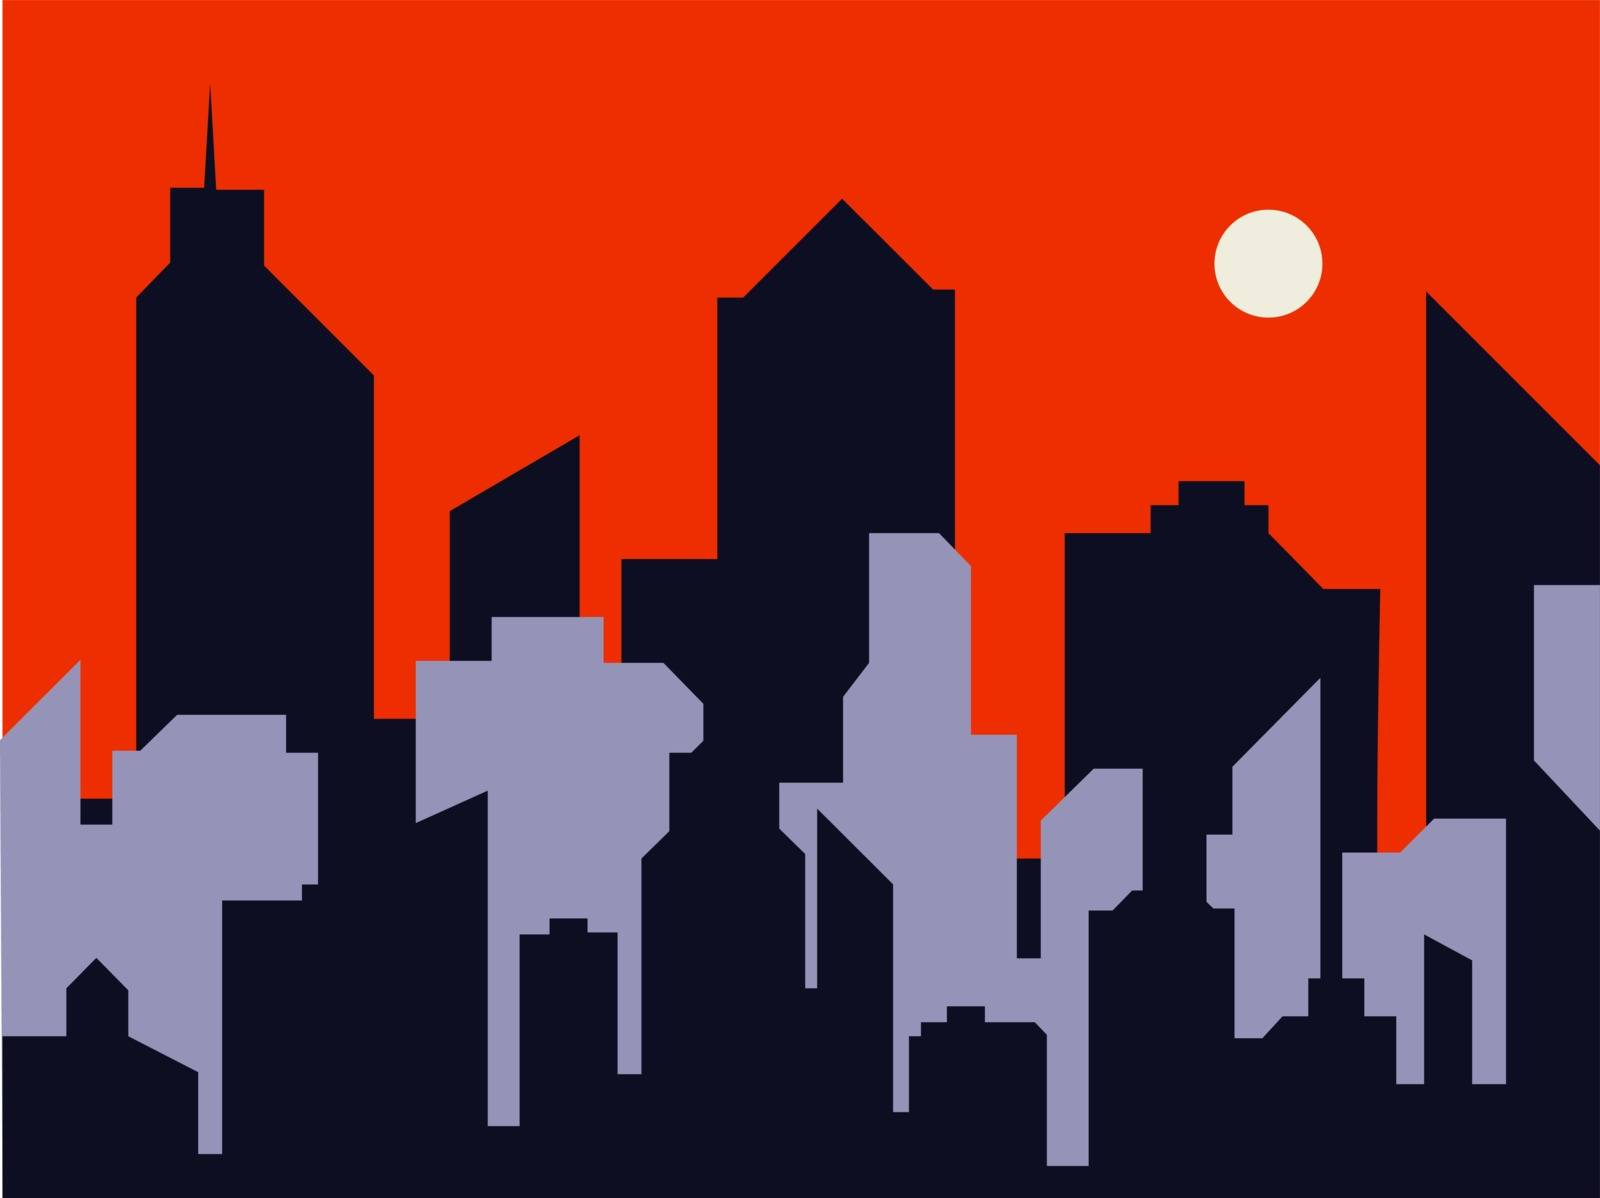 Silhouette of a city. Night in flat style. Modern urban landscape. Cityscape backgrounds. Vector illustration